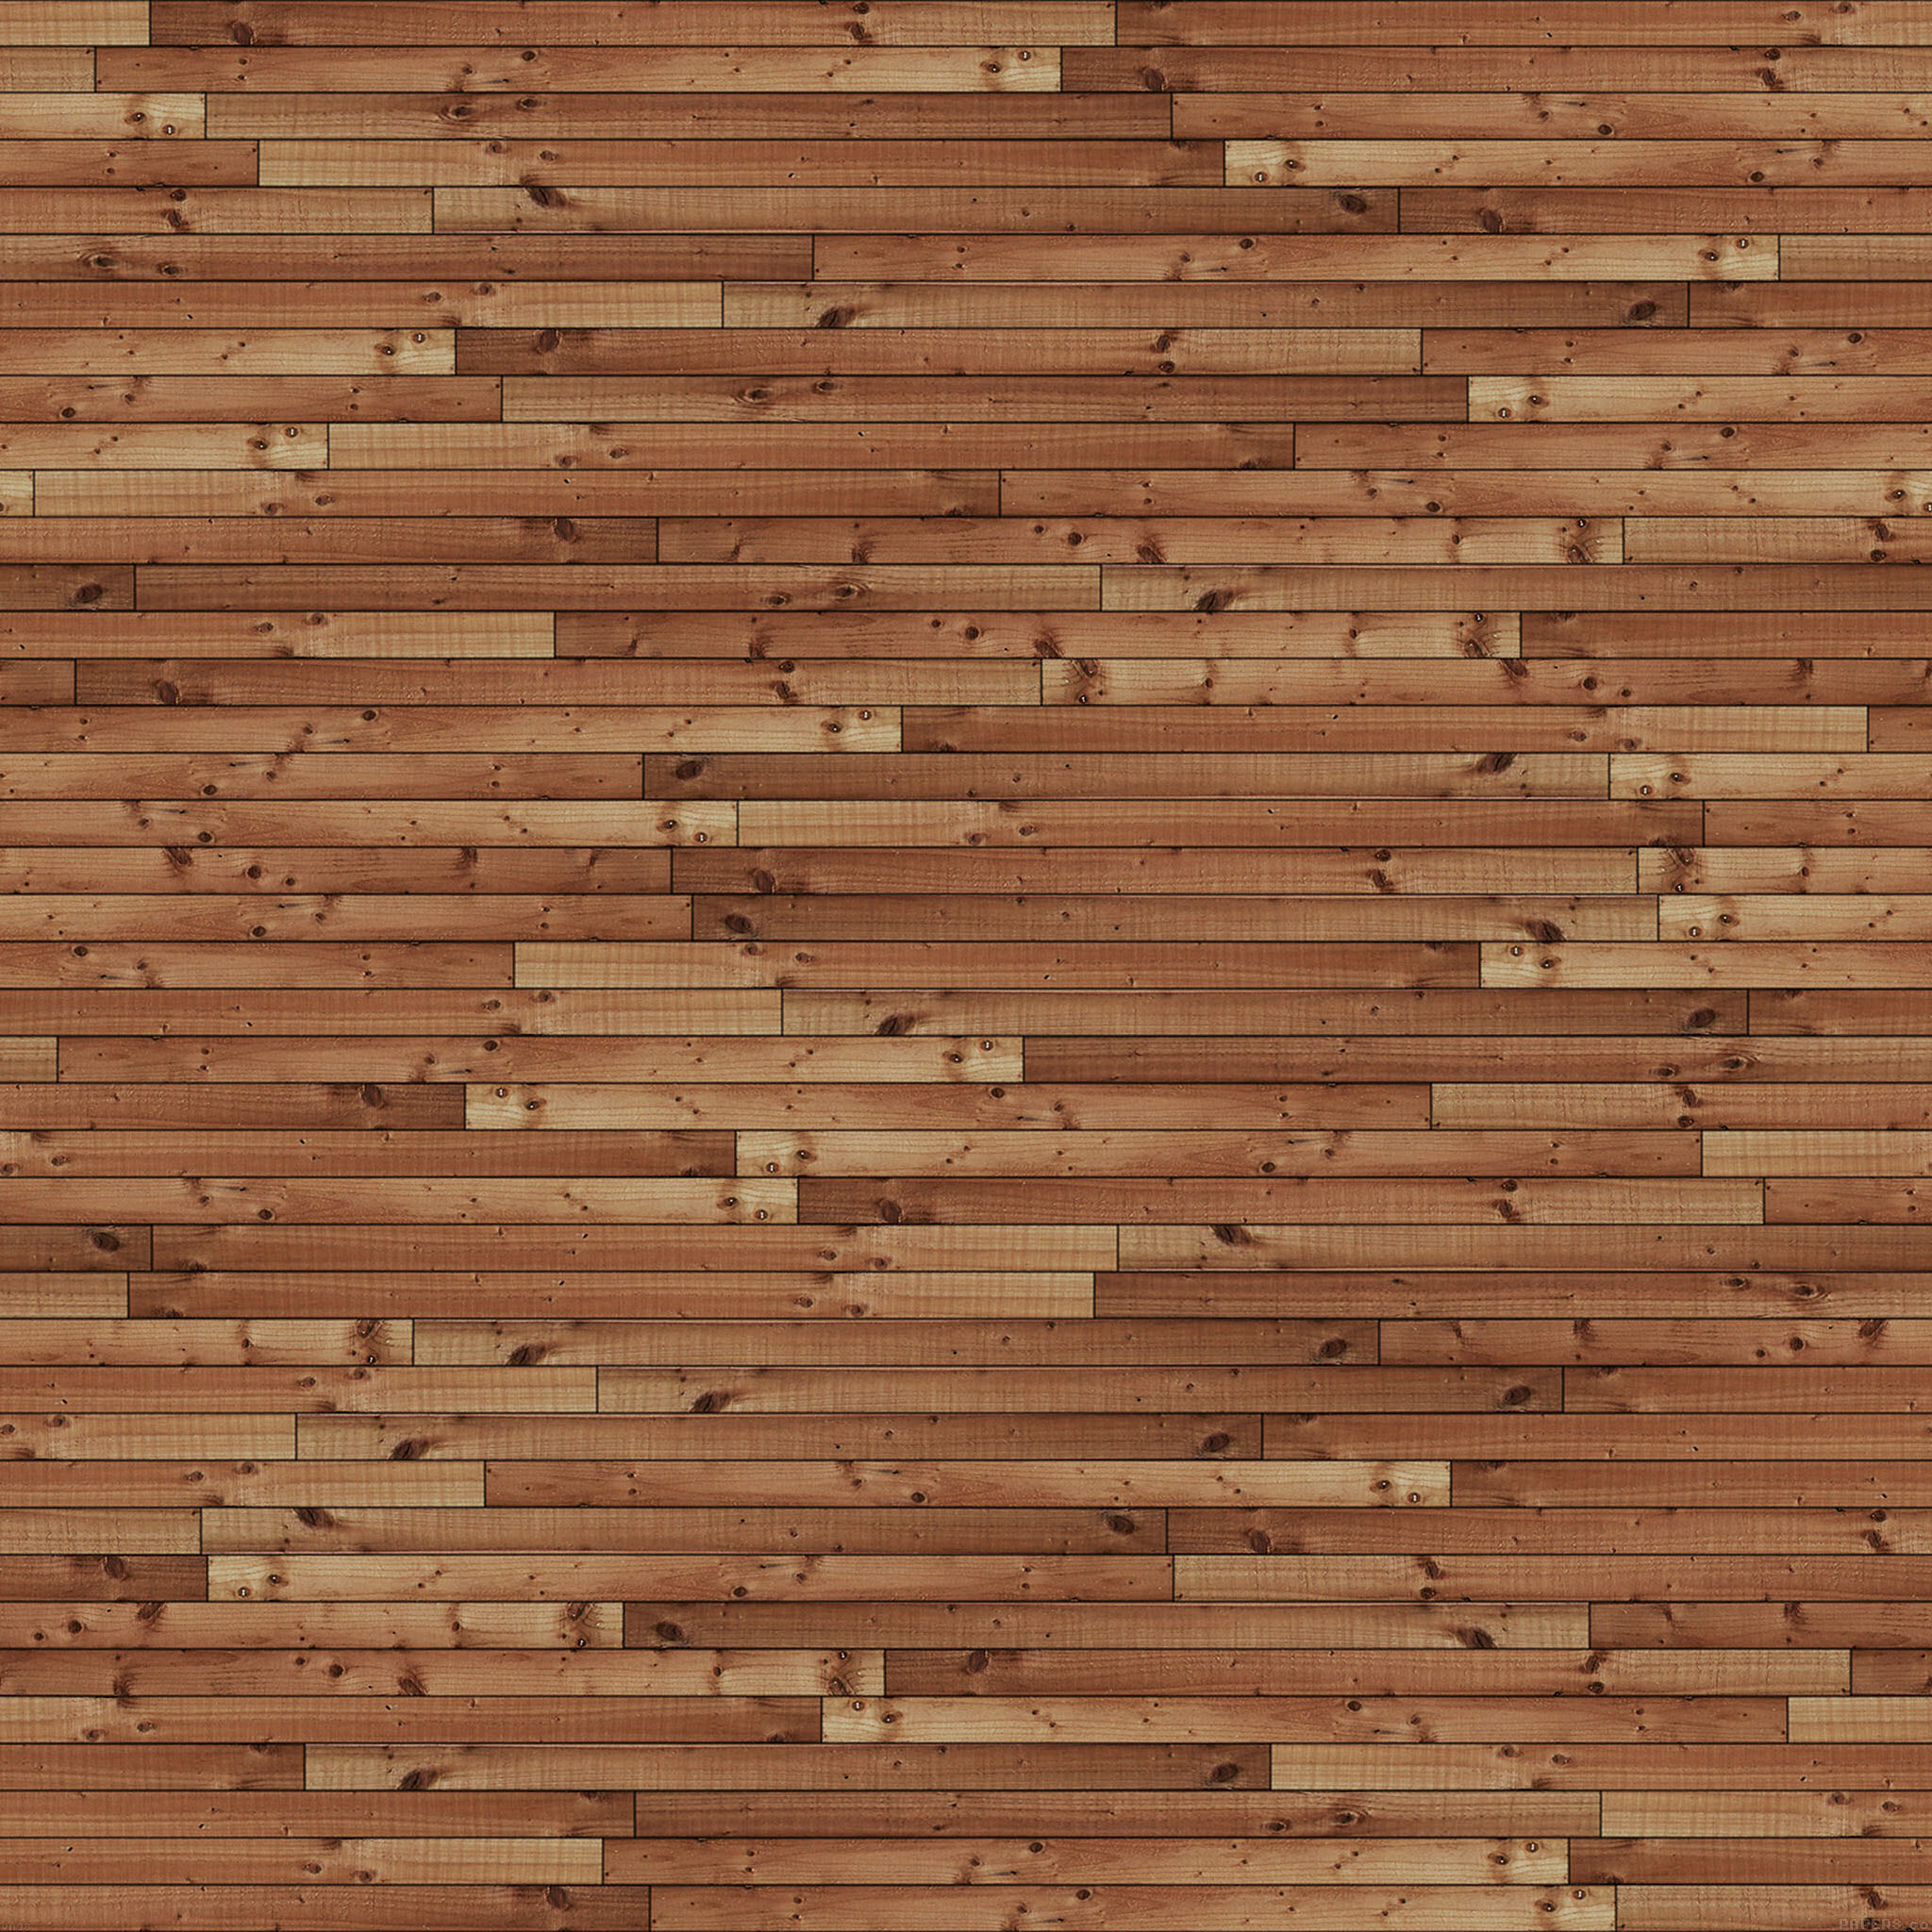 Simple Wallpaper Android Wood - papers  You Should Have_262934      .jpg